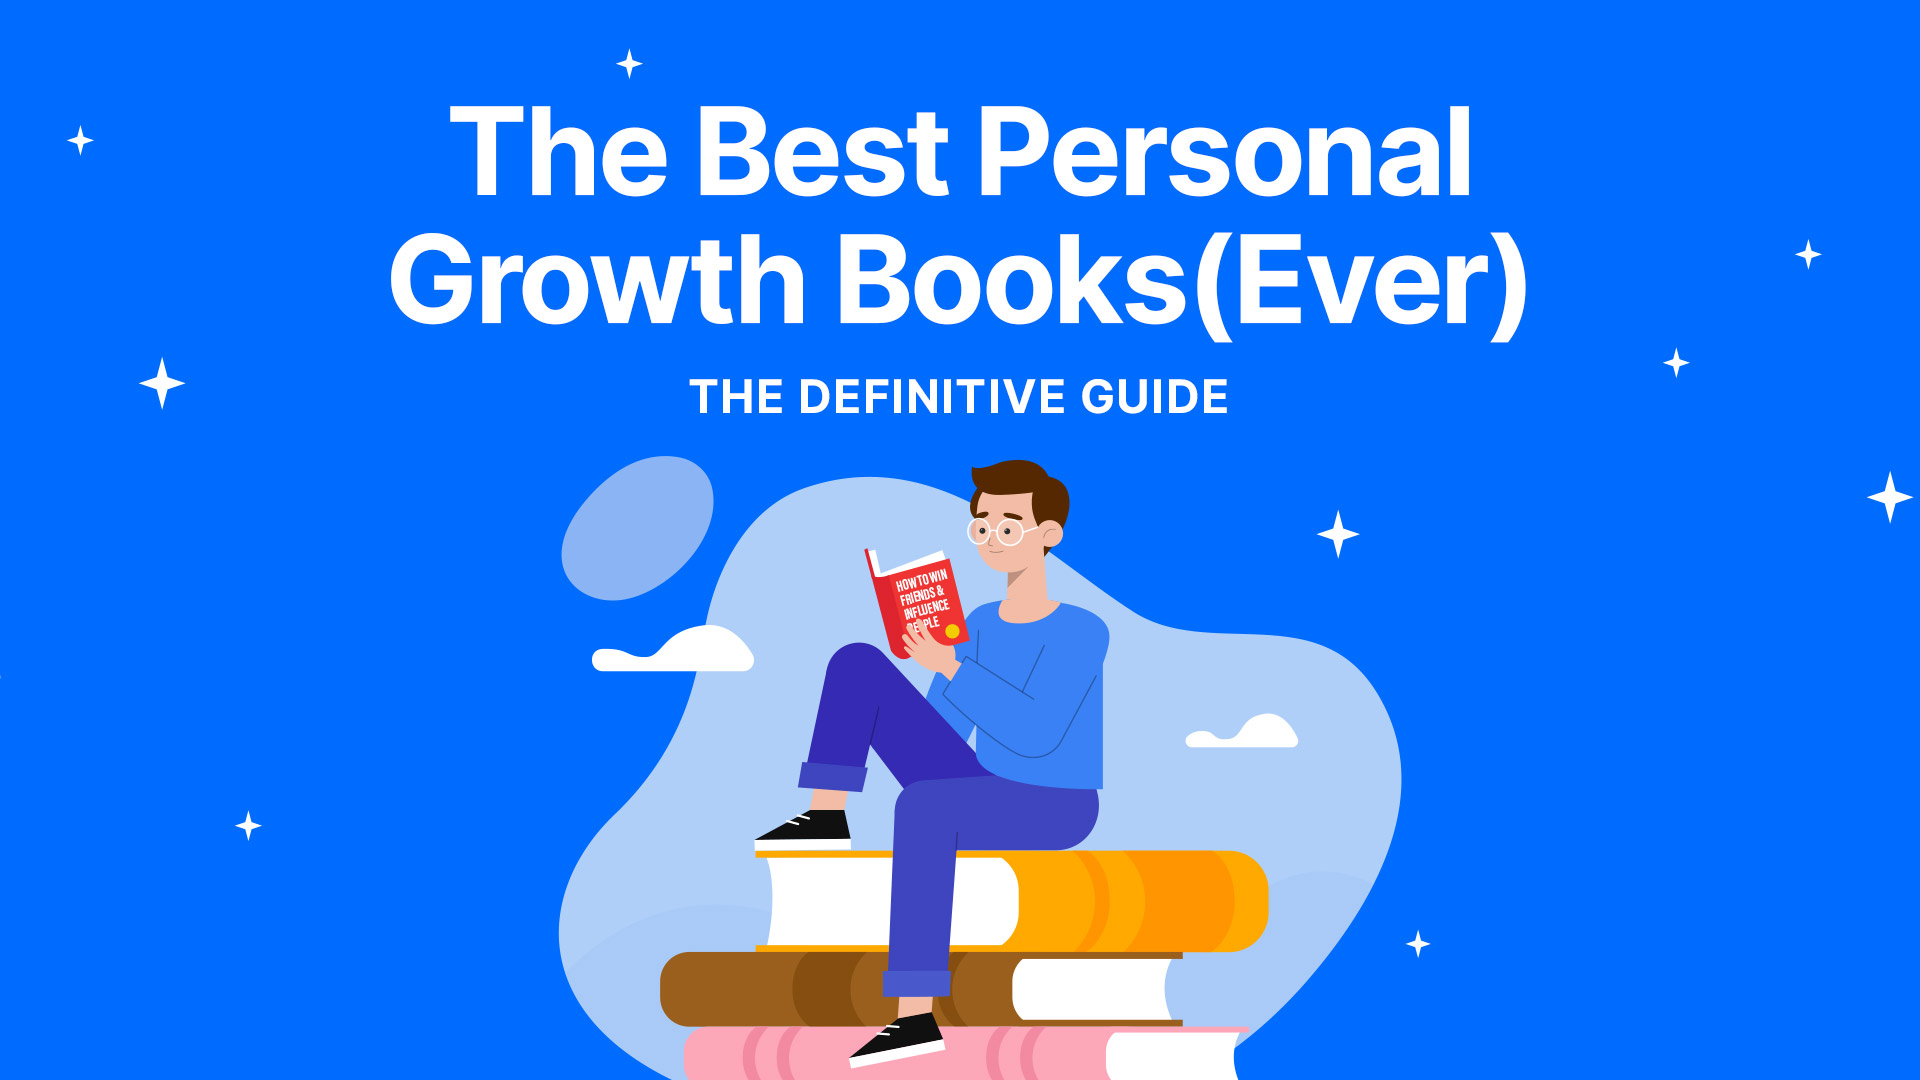 The Best Personal Growth Books Ever